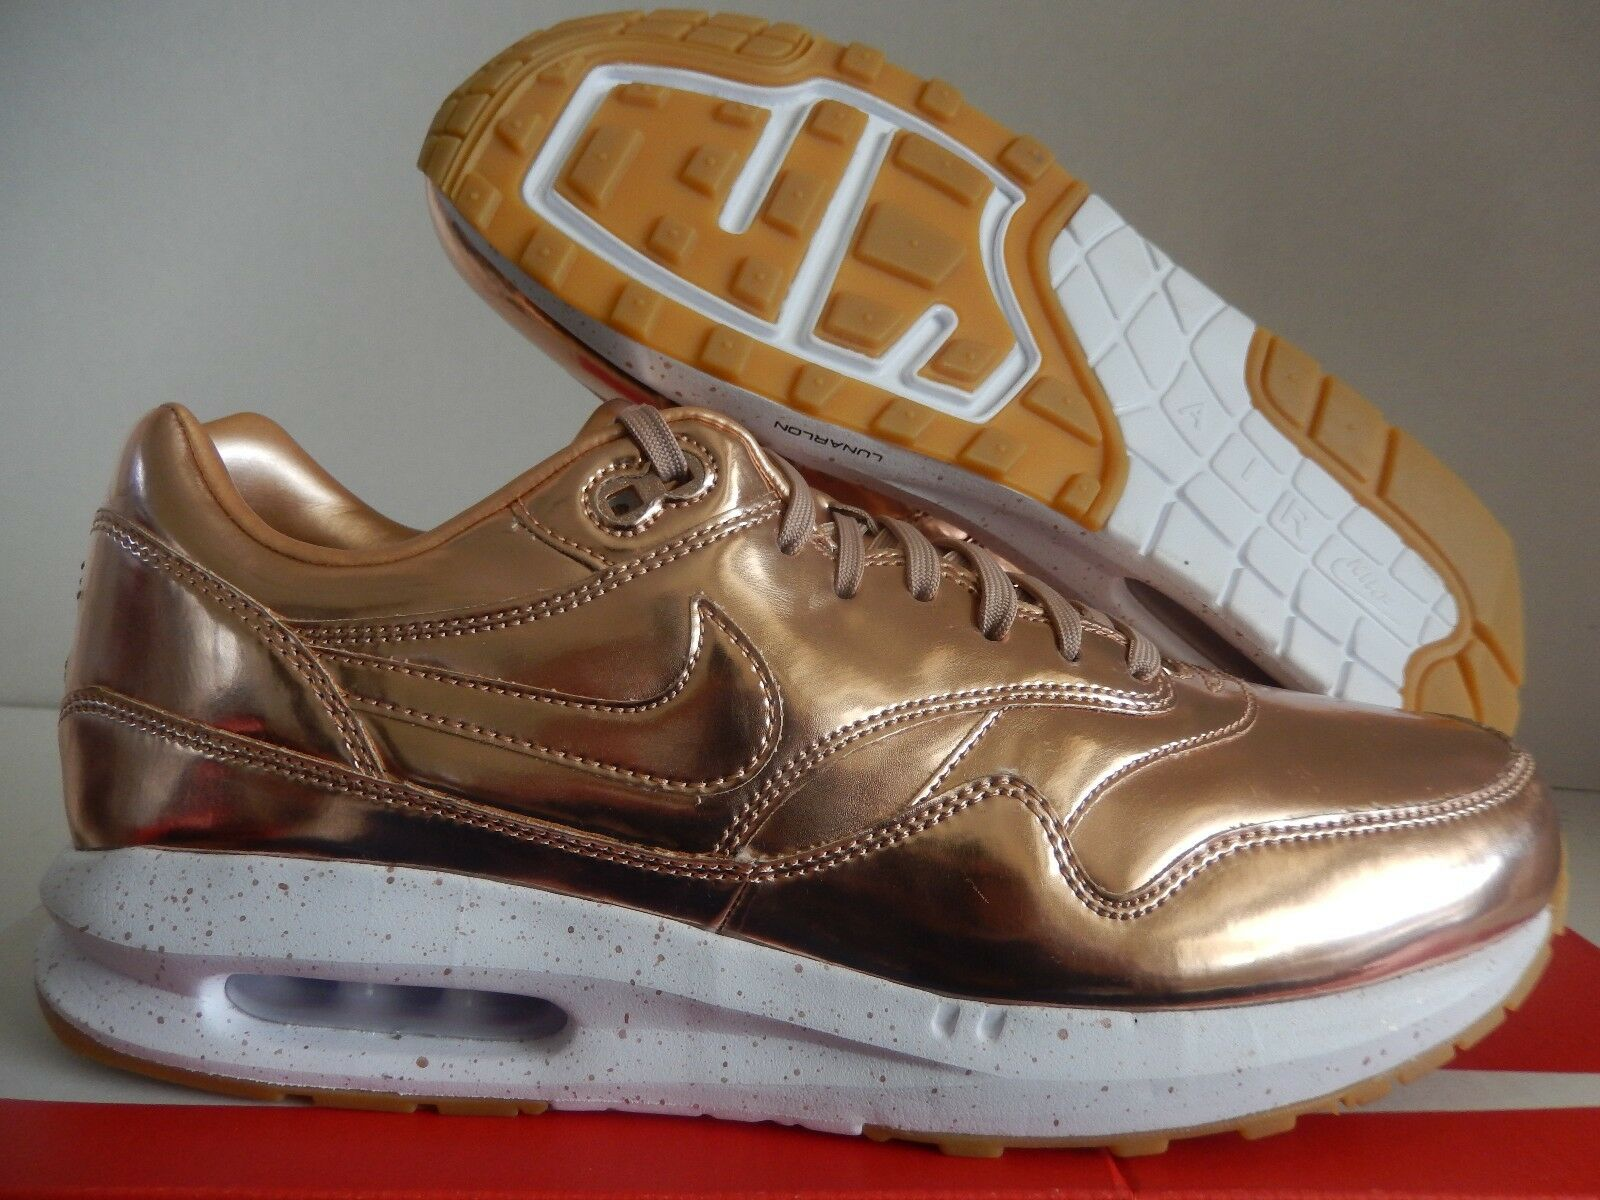 MENS NIKE AIR MAX 1 PREMIUM ID LIQUID BRONZE ROSE GOLD SZ 10.5 [886992-991]